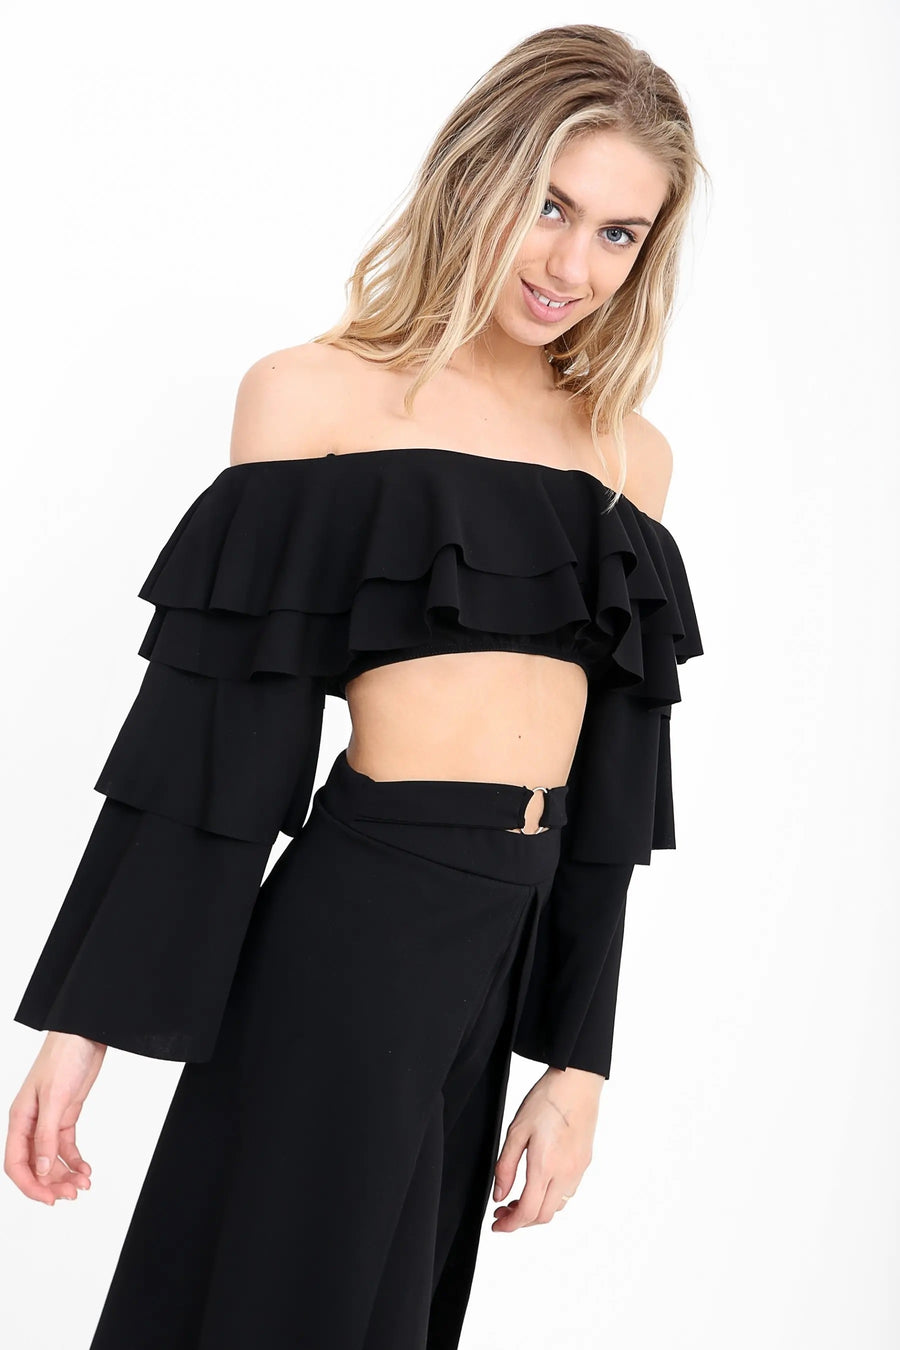 Black Layered Frill Bardot Crop Gypsy Top - Harley - storm desire